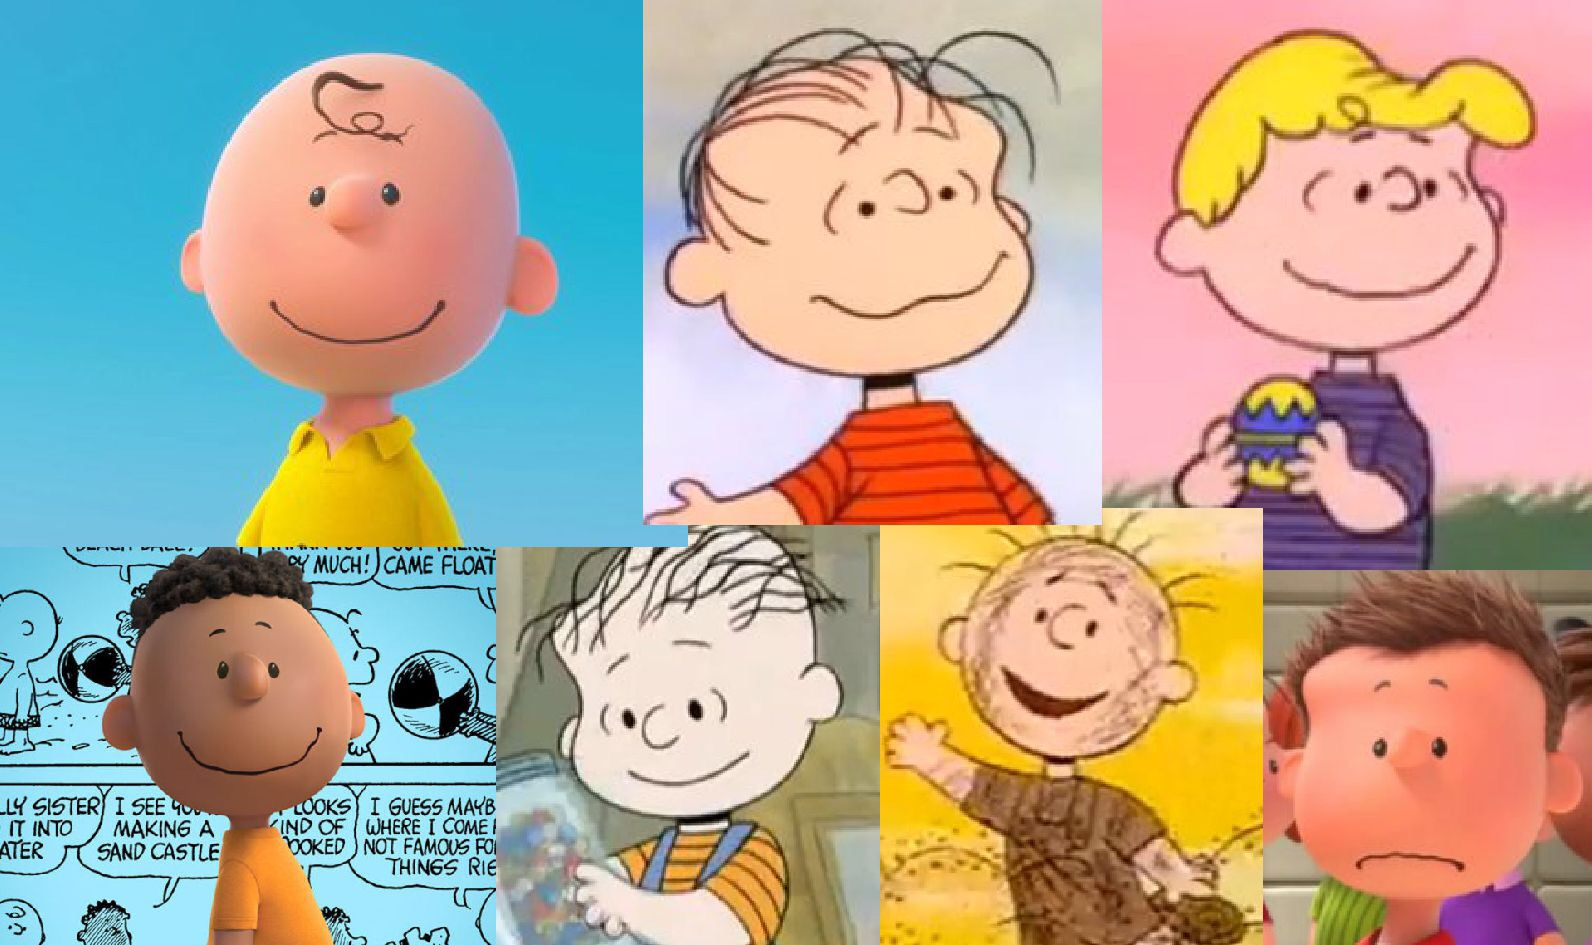 Charlie Brown, Linus, Schroeder, Franklin, Rerun, Pigpen and Shermy